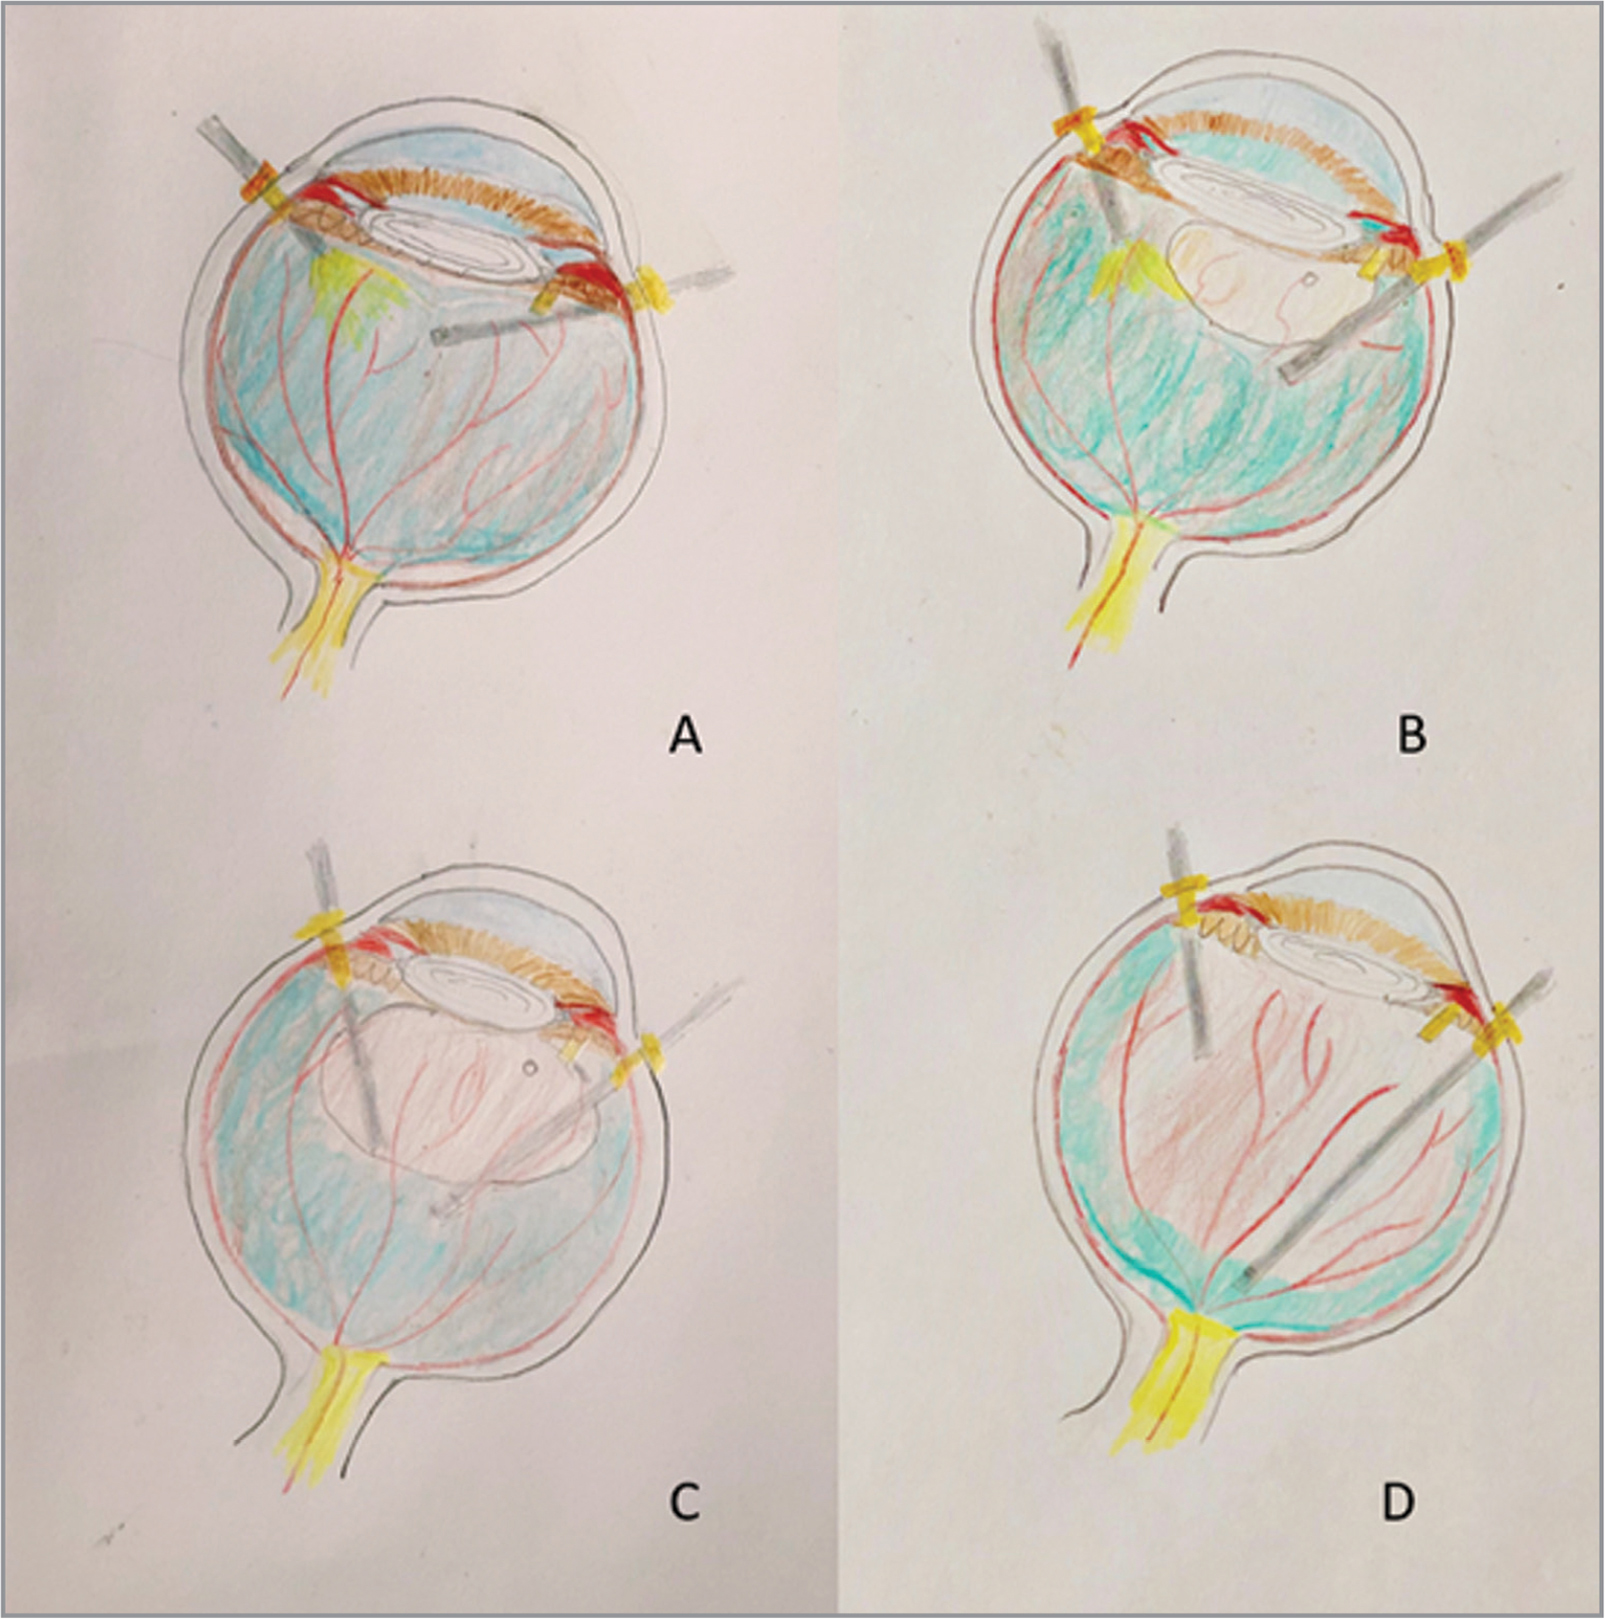 Illustration of vitrectomy biopsy under air in the presence of posterior vitreous detachment (PVD). (A) The biopsy starts with cutting the anterior vitreous body where the PVD is present. (B) The cutter should start to harvest vitreous just behind the air bubble. The air bubble helps to push the vitreous body backward. (C) The cutter cuts the core vitreous body behind the air bubble. In most situations, cutting the middle vitreous body and the inner surface of posterior and peripheral vitreous cortex can meet the need of harvesting 2 mL to 3mL of undiluted vitreous sample. It can help to make the peripheral vitreous cortex and posterior vitreous cortex stable and lessen the traction of vitreous body to the peripheral retina. (D) The peripheral vitreous cortex and posterior virtreous cortex should be left to cut when fluid infusion is turned on.